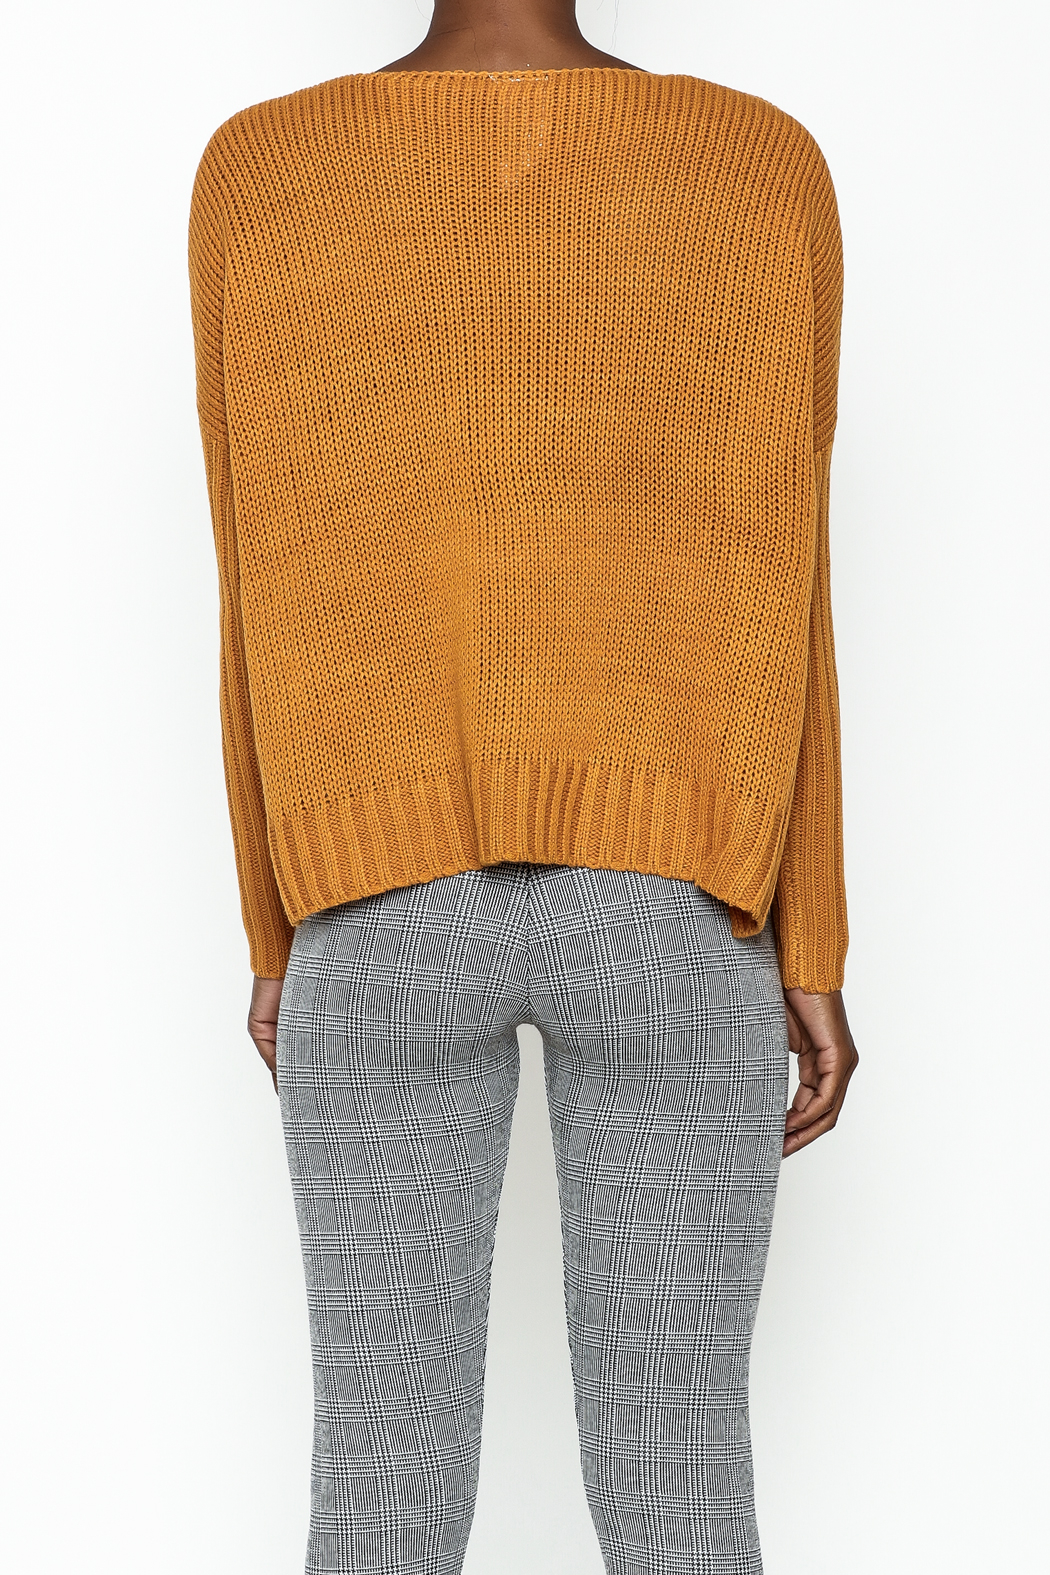 Sadie and Sage Boxy Sweater - Back Cropped Image